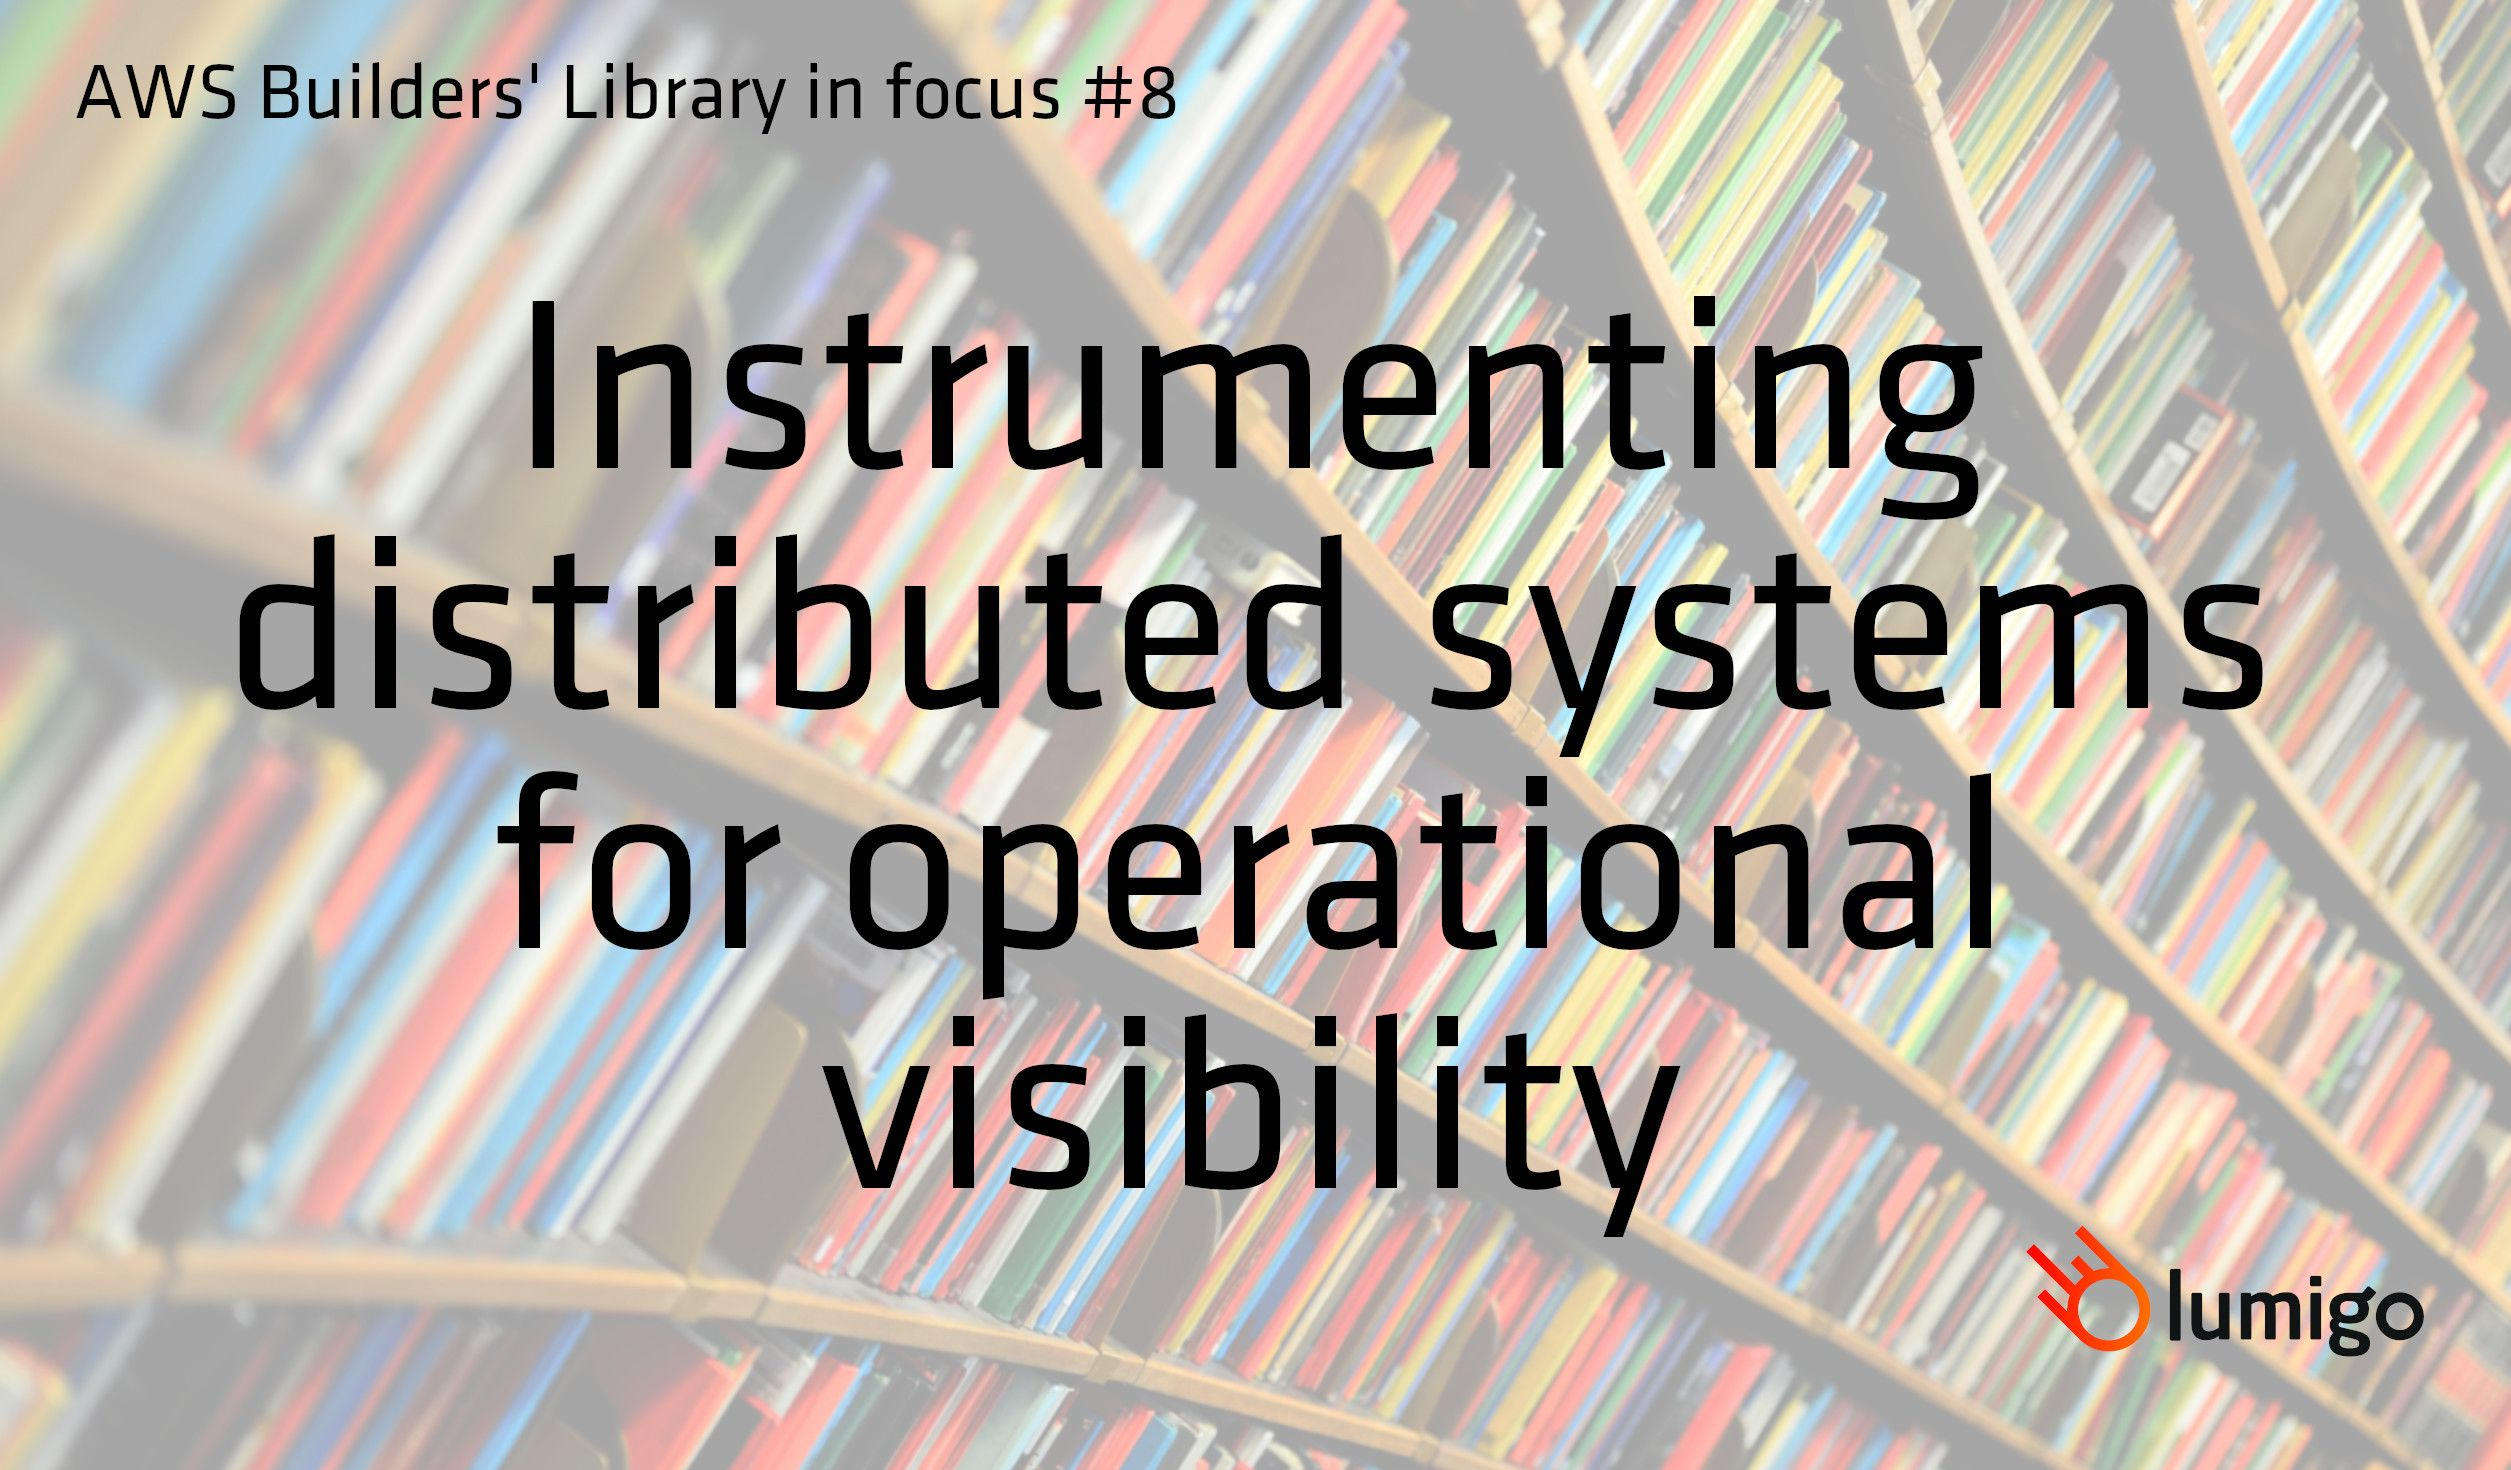 Instrumenting distributed systems for operational visibility